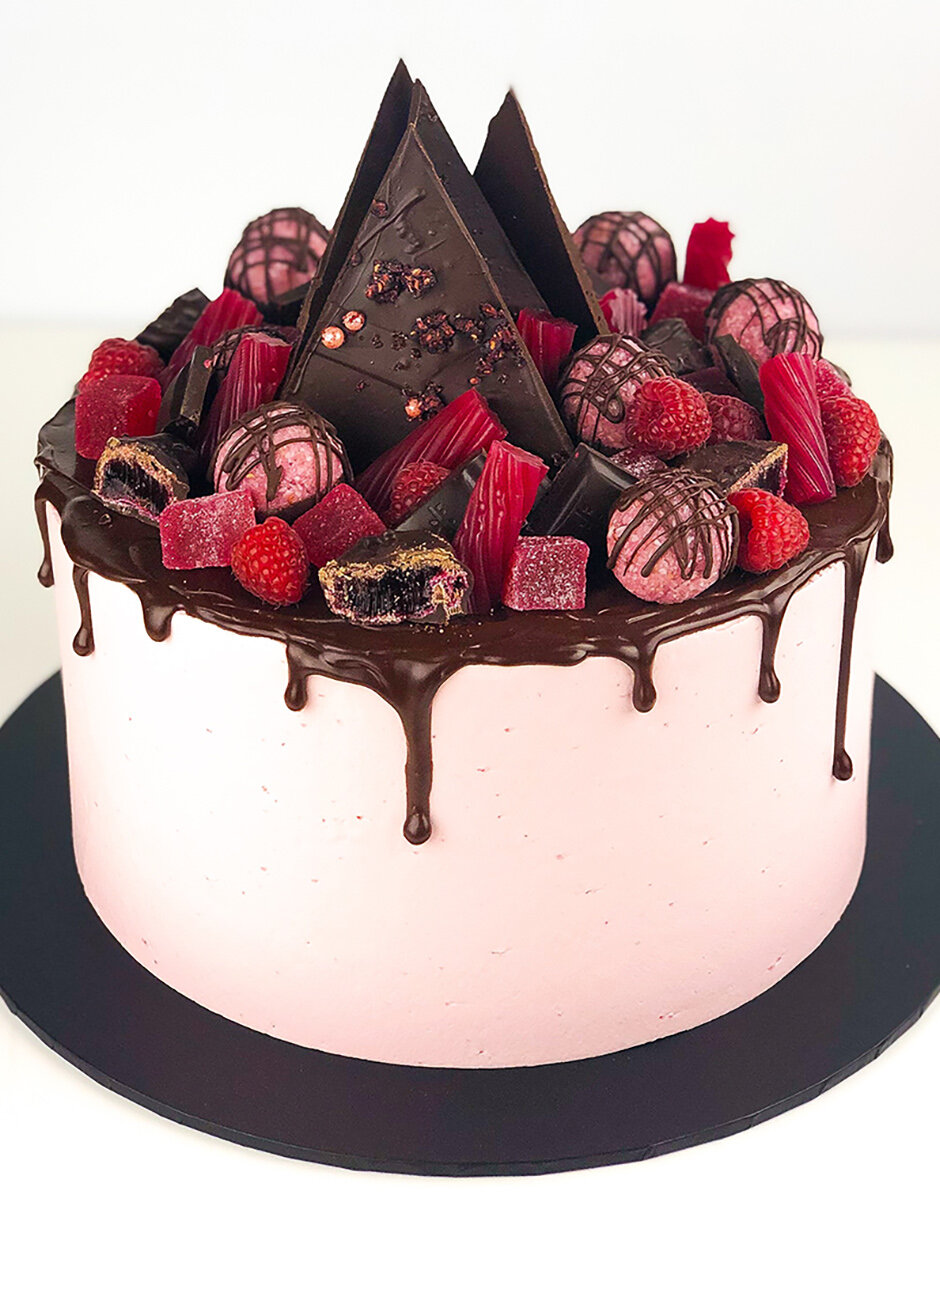 - Overload Cakes - Super indulgent chocolate drip cakes overloaded with lots of yummy things.